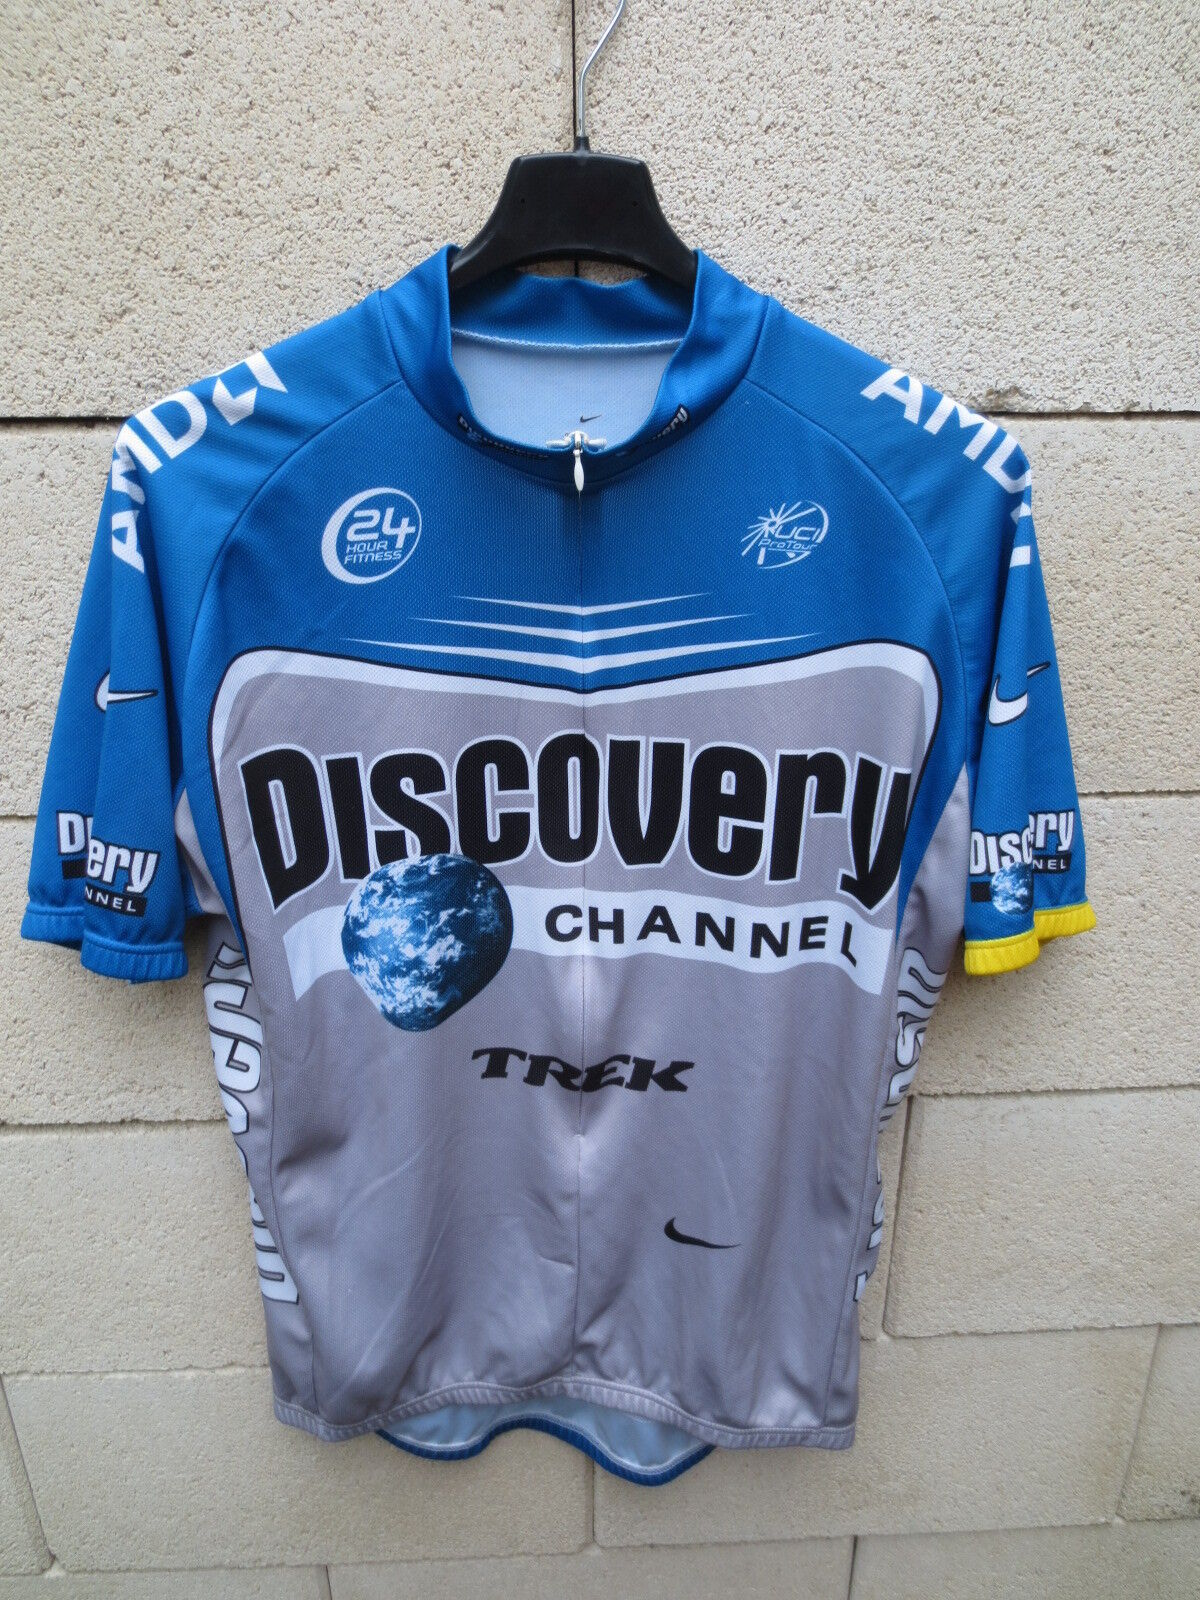 Maillot cycliste DISCOVERY  CHANNEL NIKE Shirt Pro Team Tour 2006 jersey XL  quality first consumers first